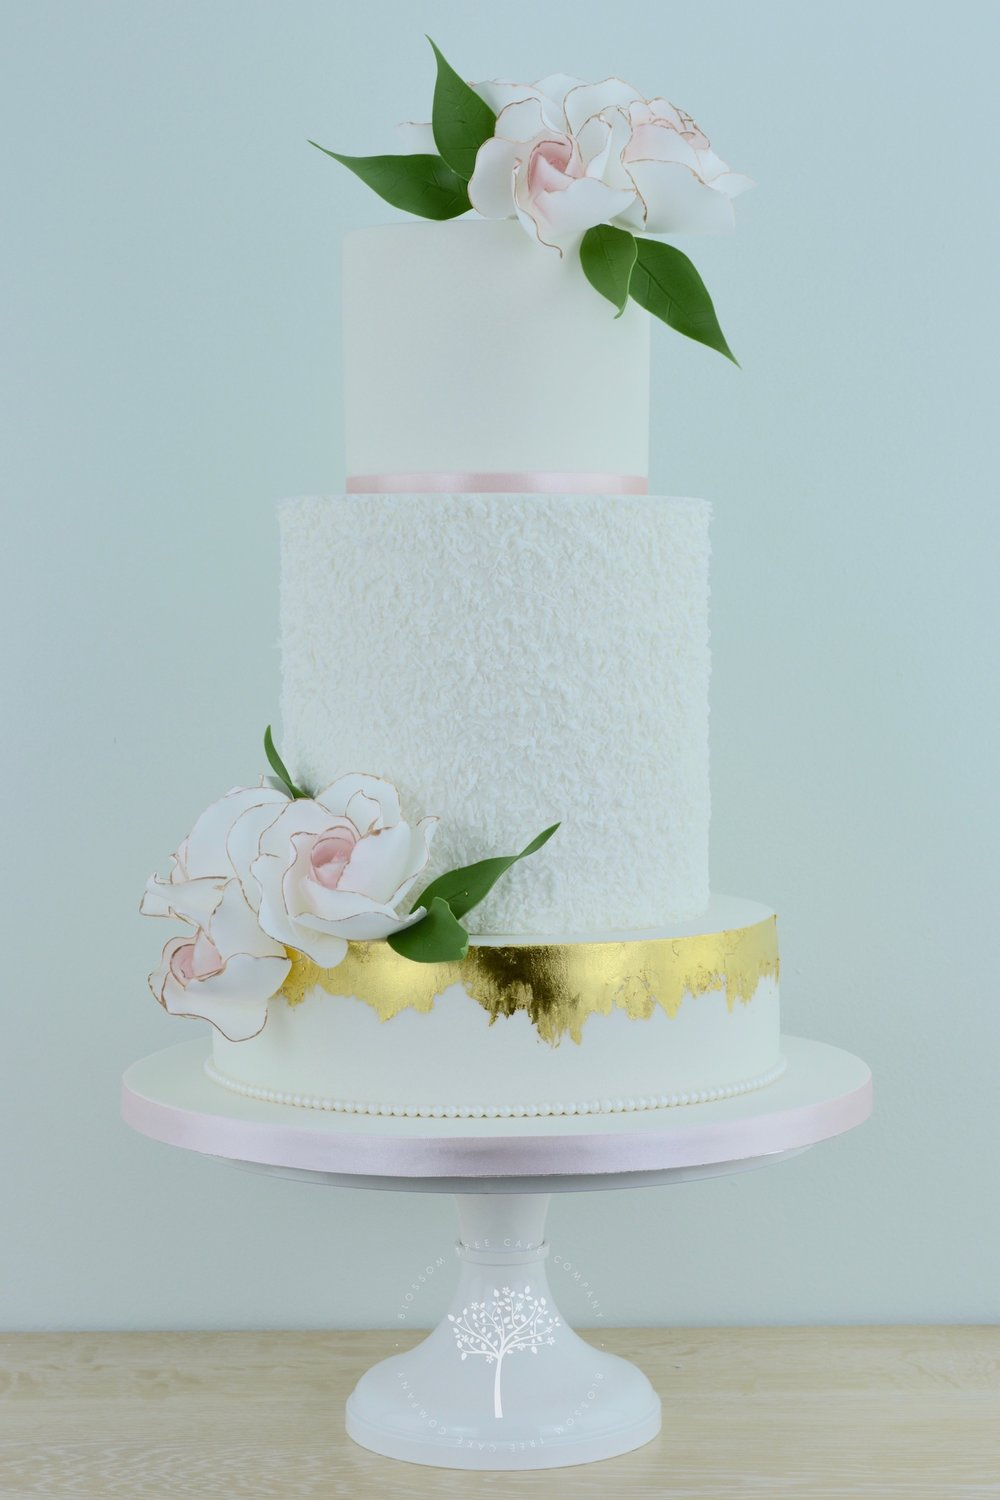 Blush Roses wedding cake by Blossom Tree Cake Company Harrogate North Yorkshire.jpg